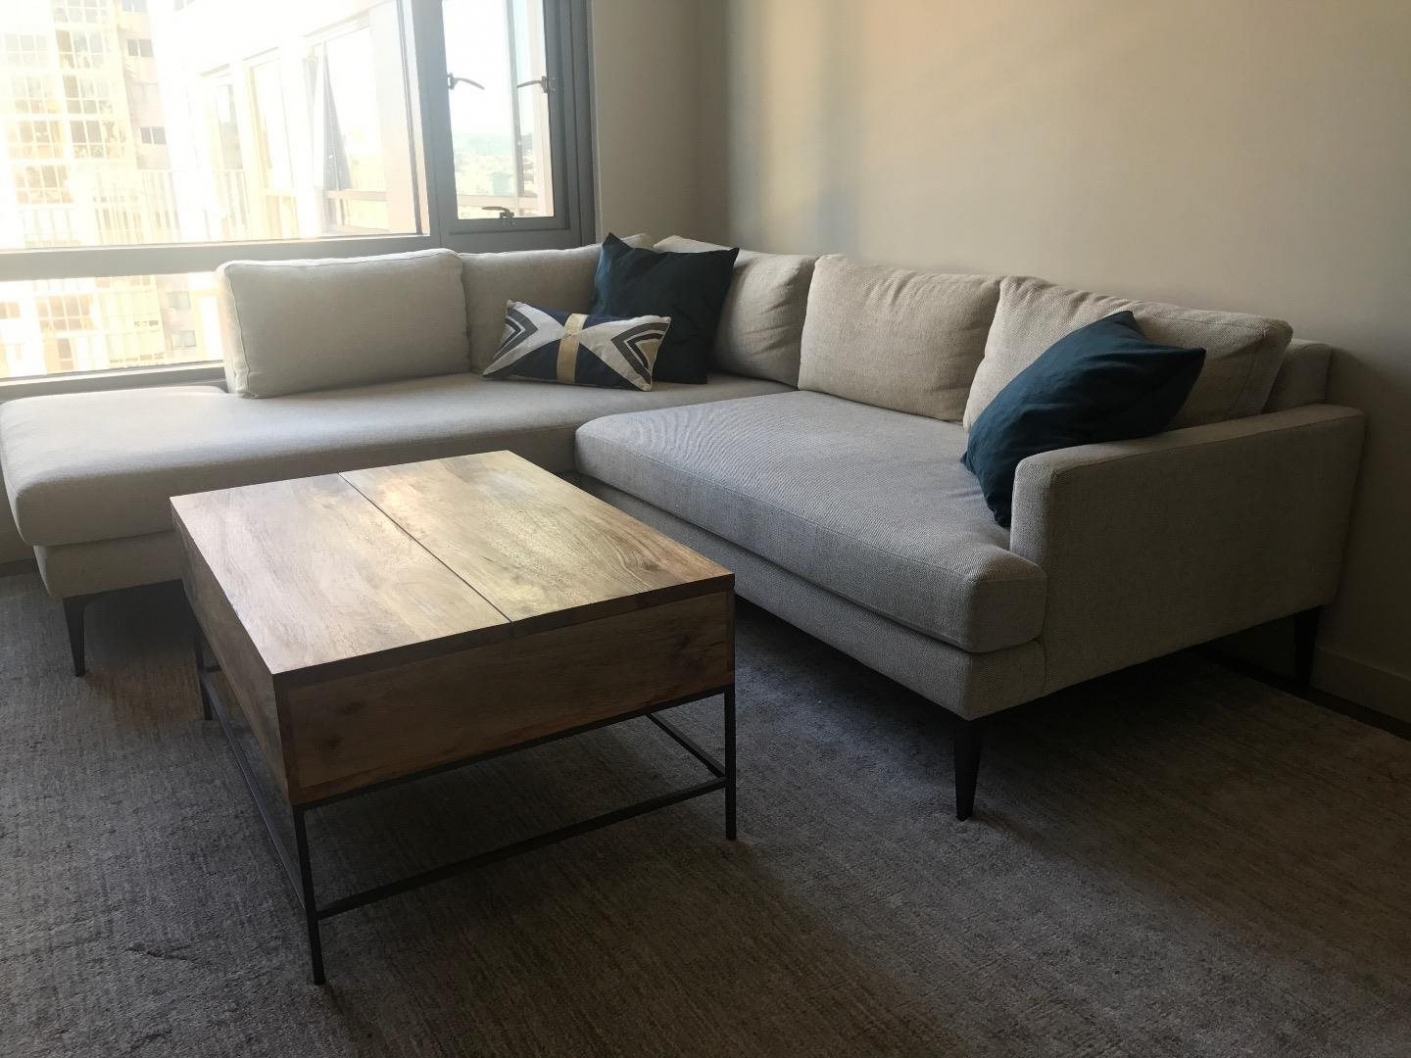 West Elm Chaises In Newest Furniture: West Elm Andes Terminal Chaise Sectional Couch: For (View 13 of 15)